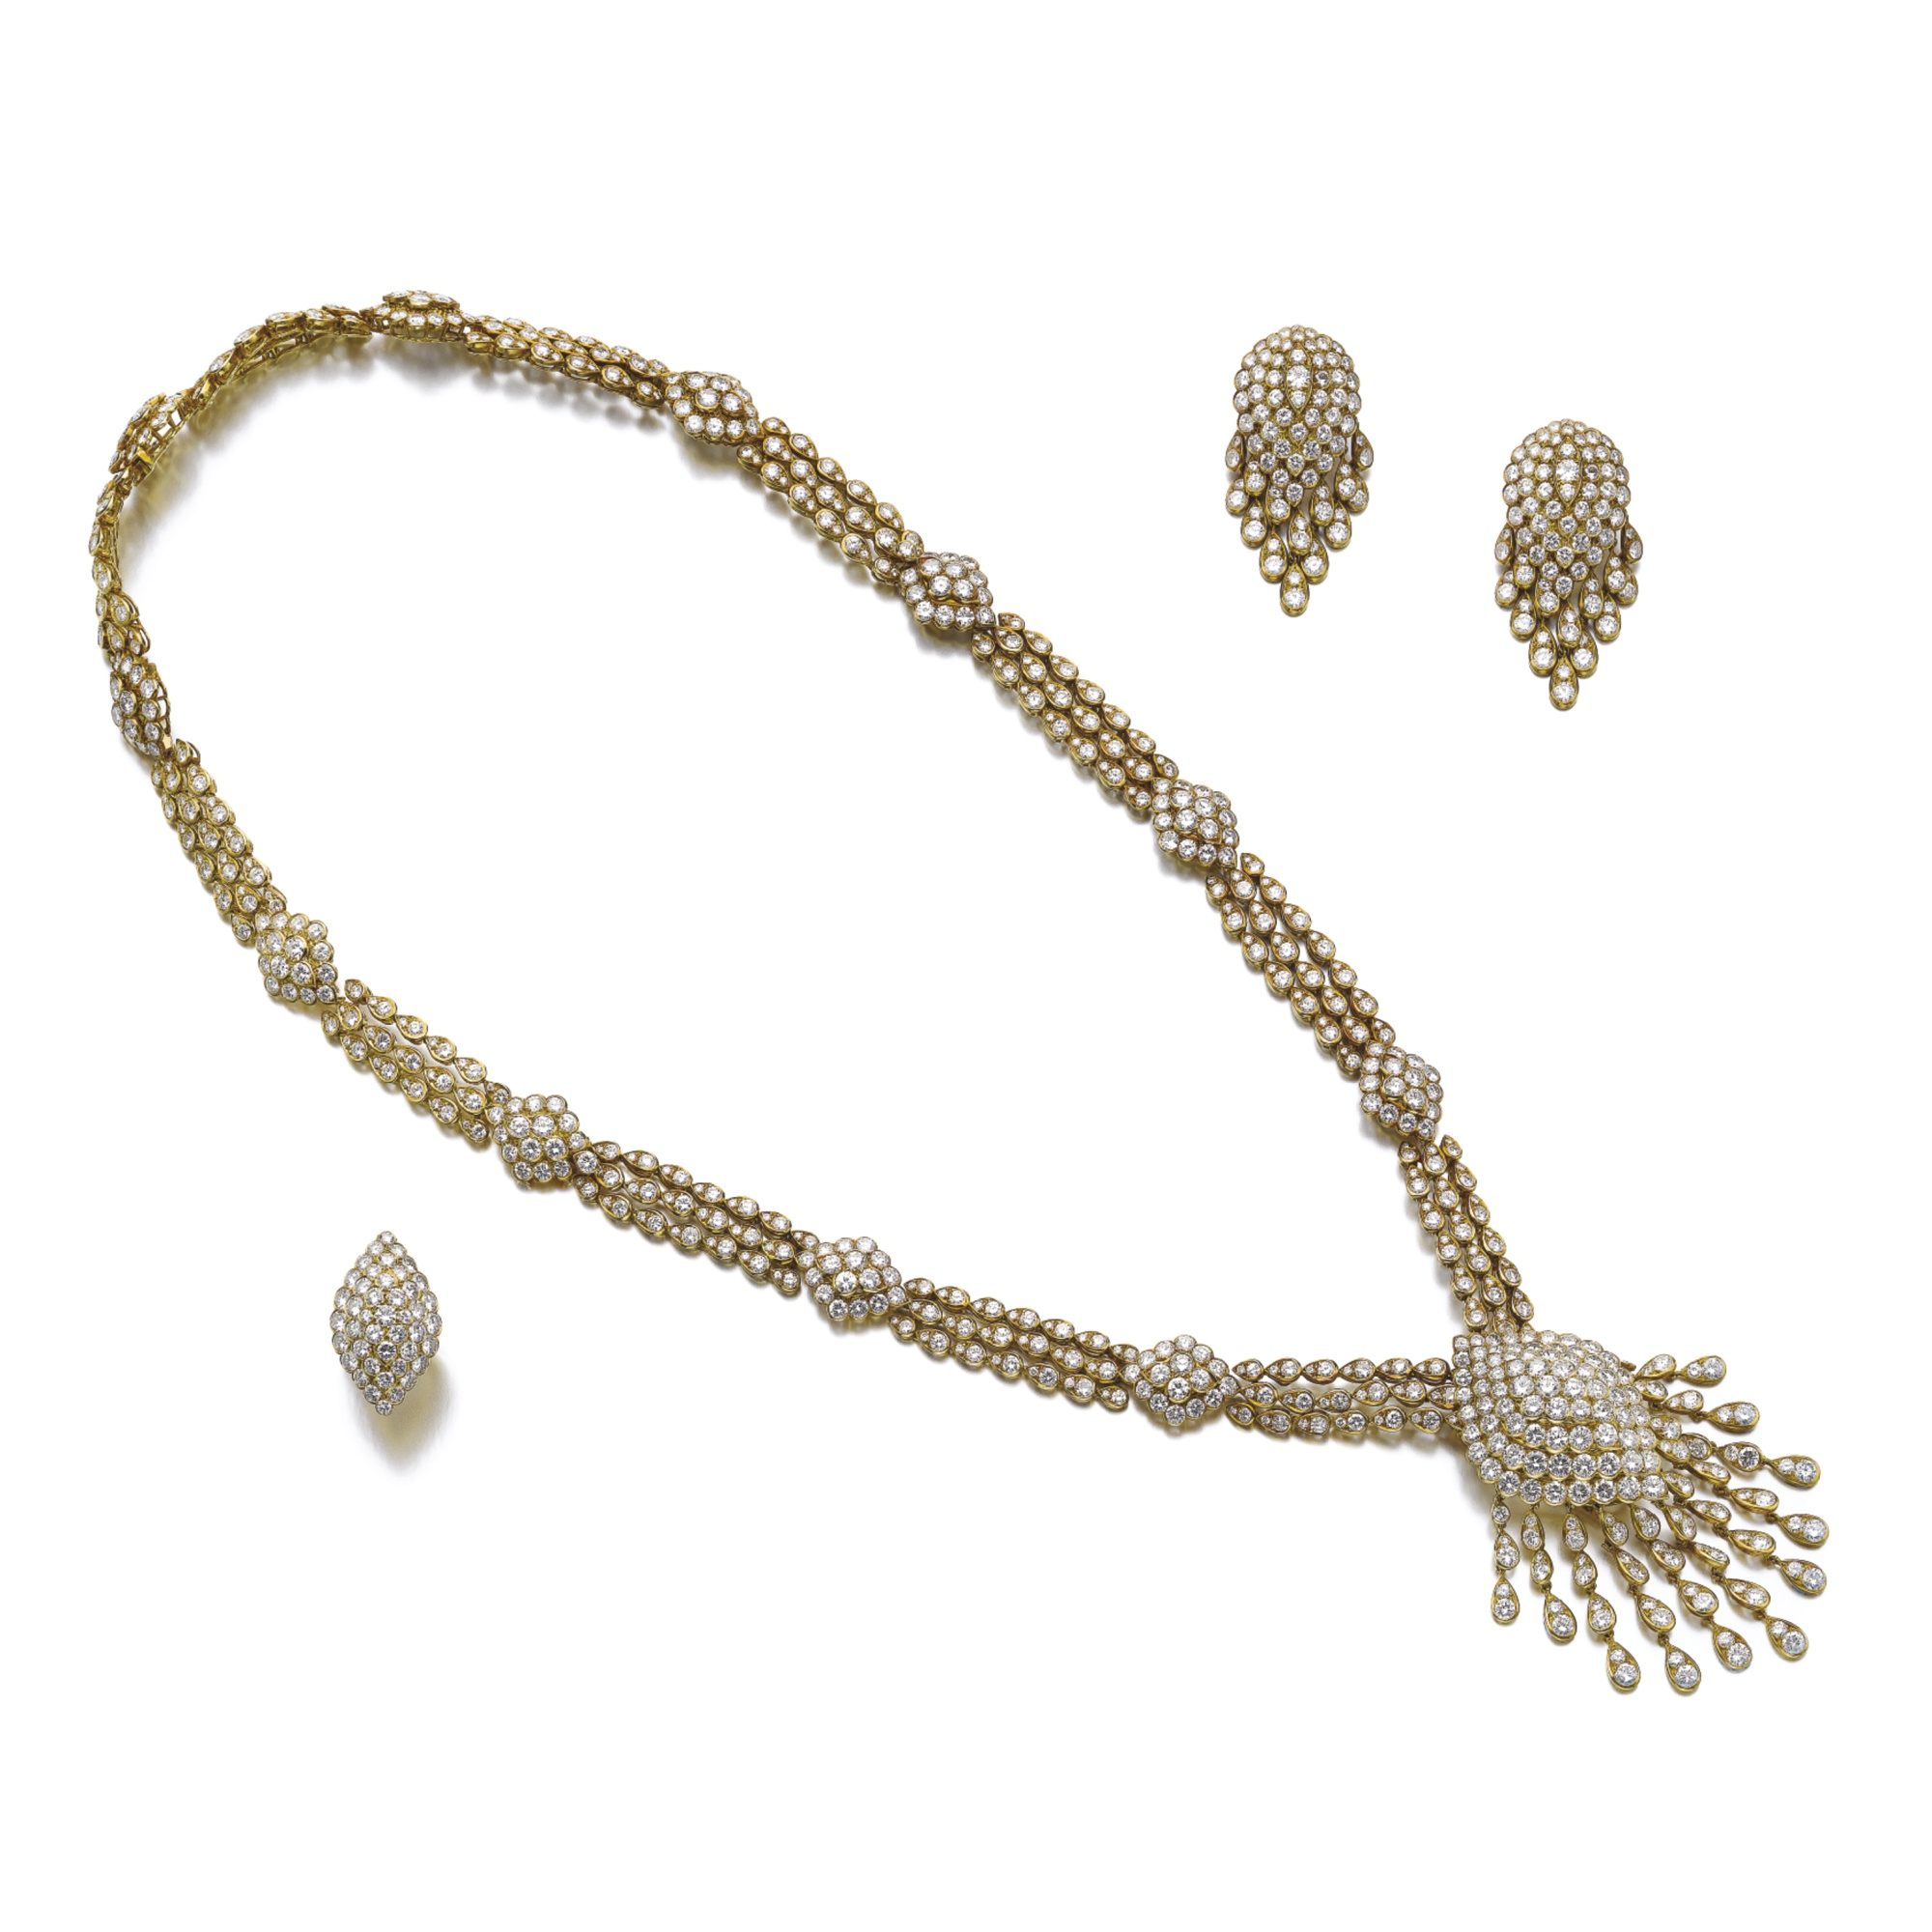 Diamond parure, Van Cleef & Arpels. Comprised of: a sautoir set with brilliant-cut diamonds, supporting a detachable pendant that can be worn as a brooch, a pair of ear clips and a ring